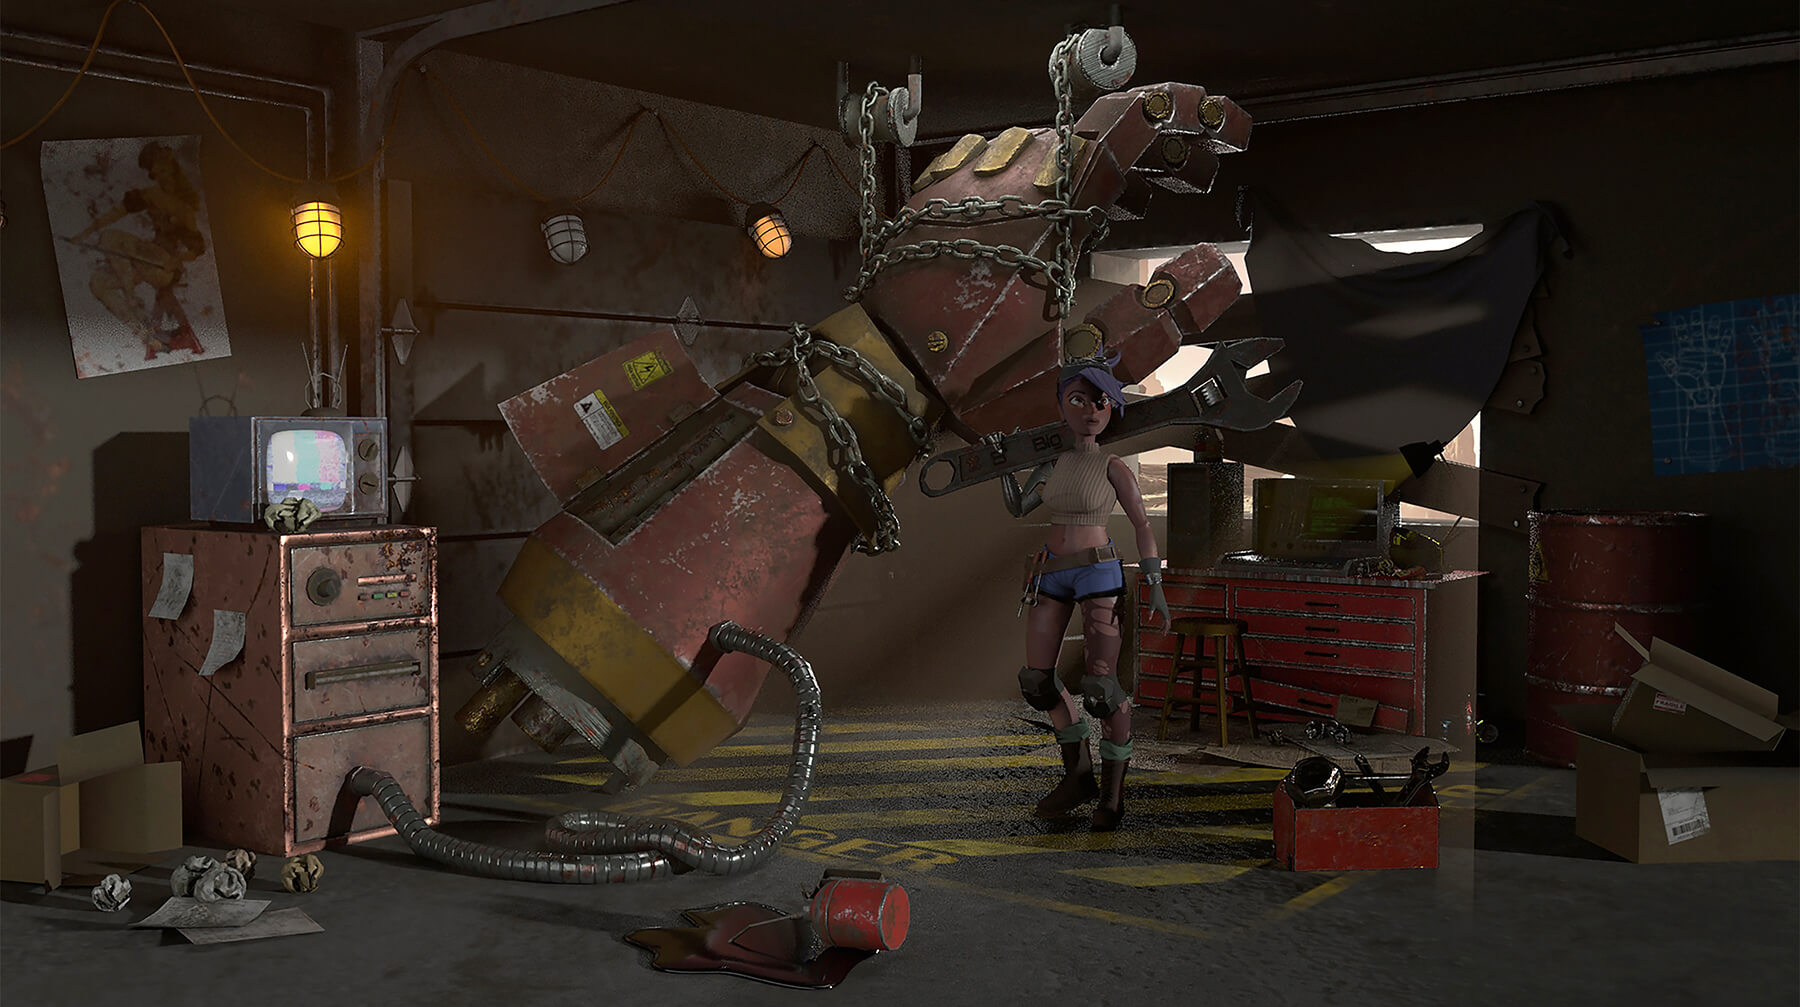 3D model of a woman mechanic holding a giant wrench, standing in a garage next to a giant robot arm.